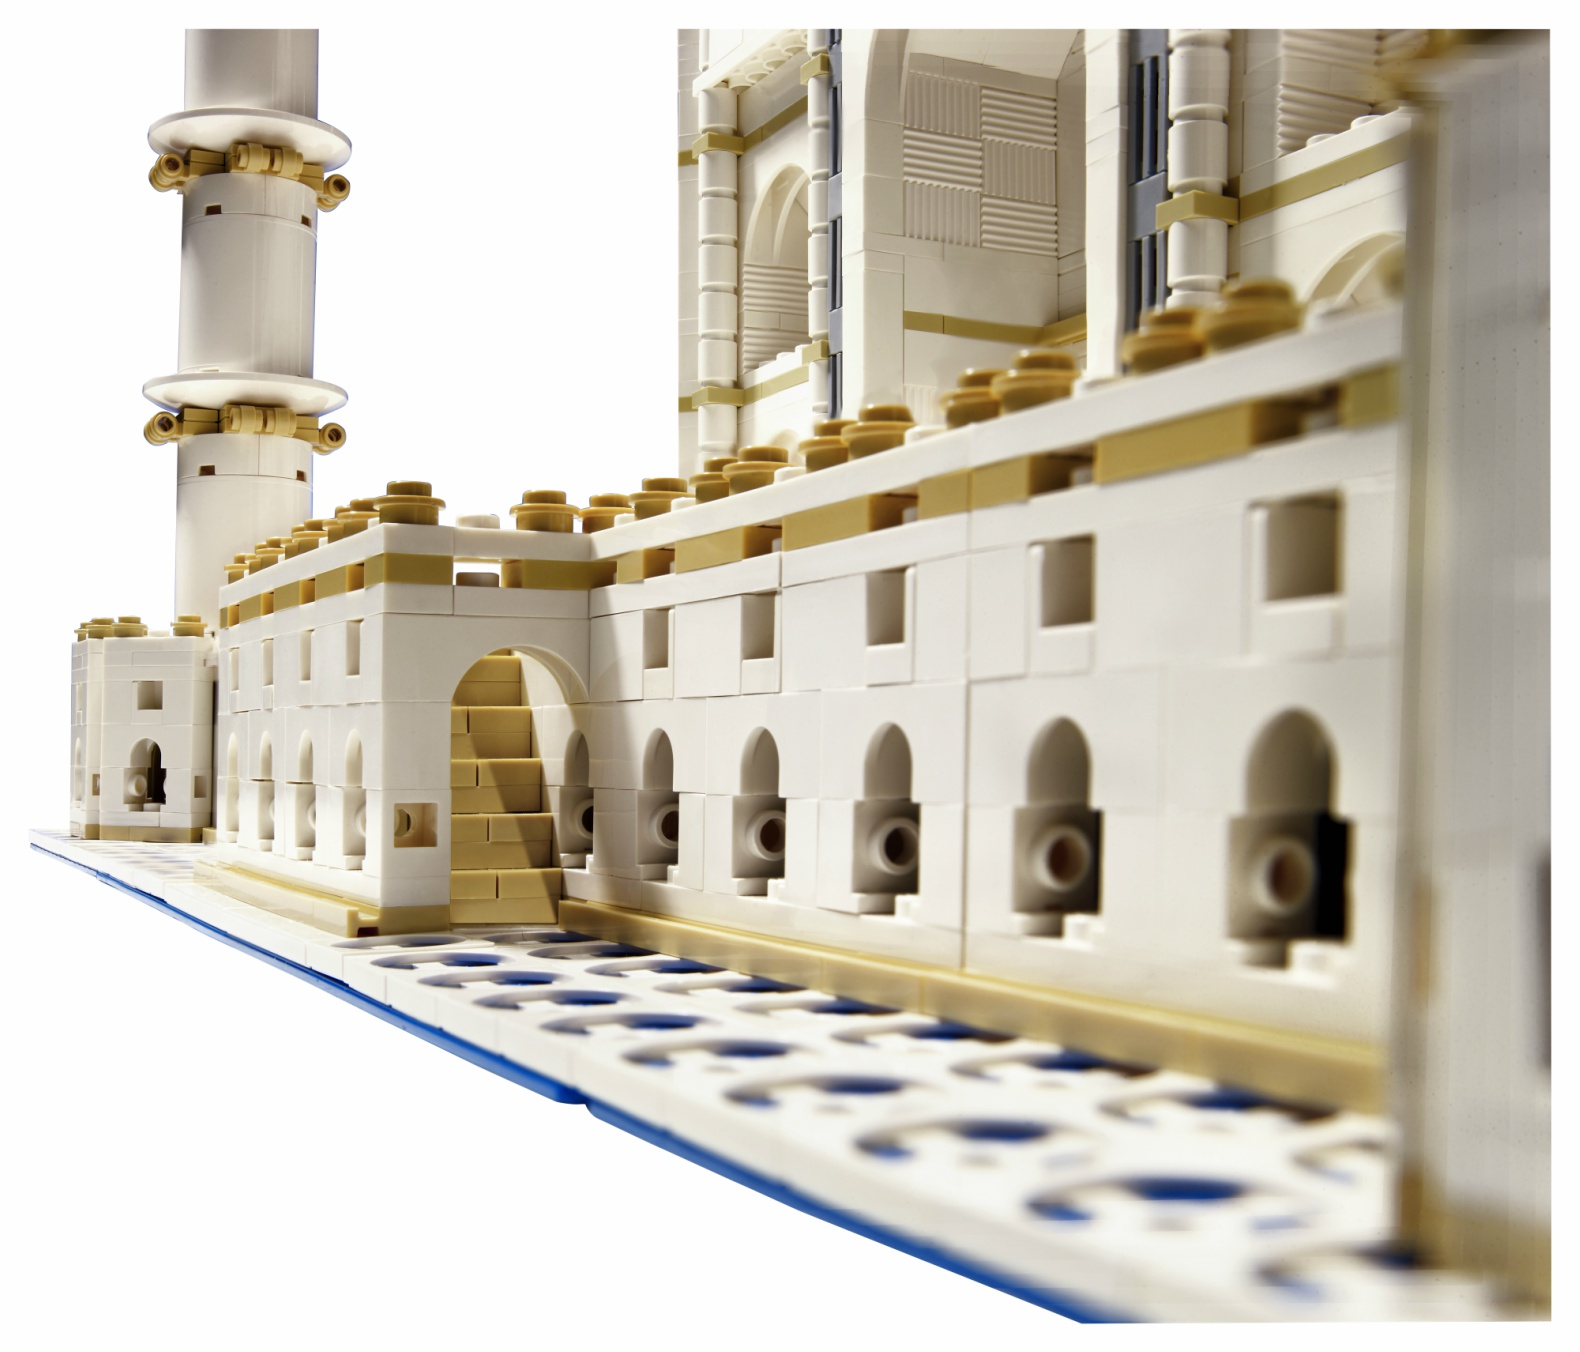 Frank Lloyd Wright Model Kits Lego Relaunches Its Beloved Taj Mahal Model With Almost